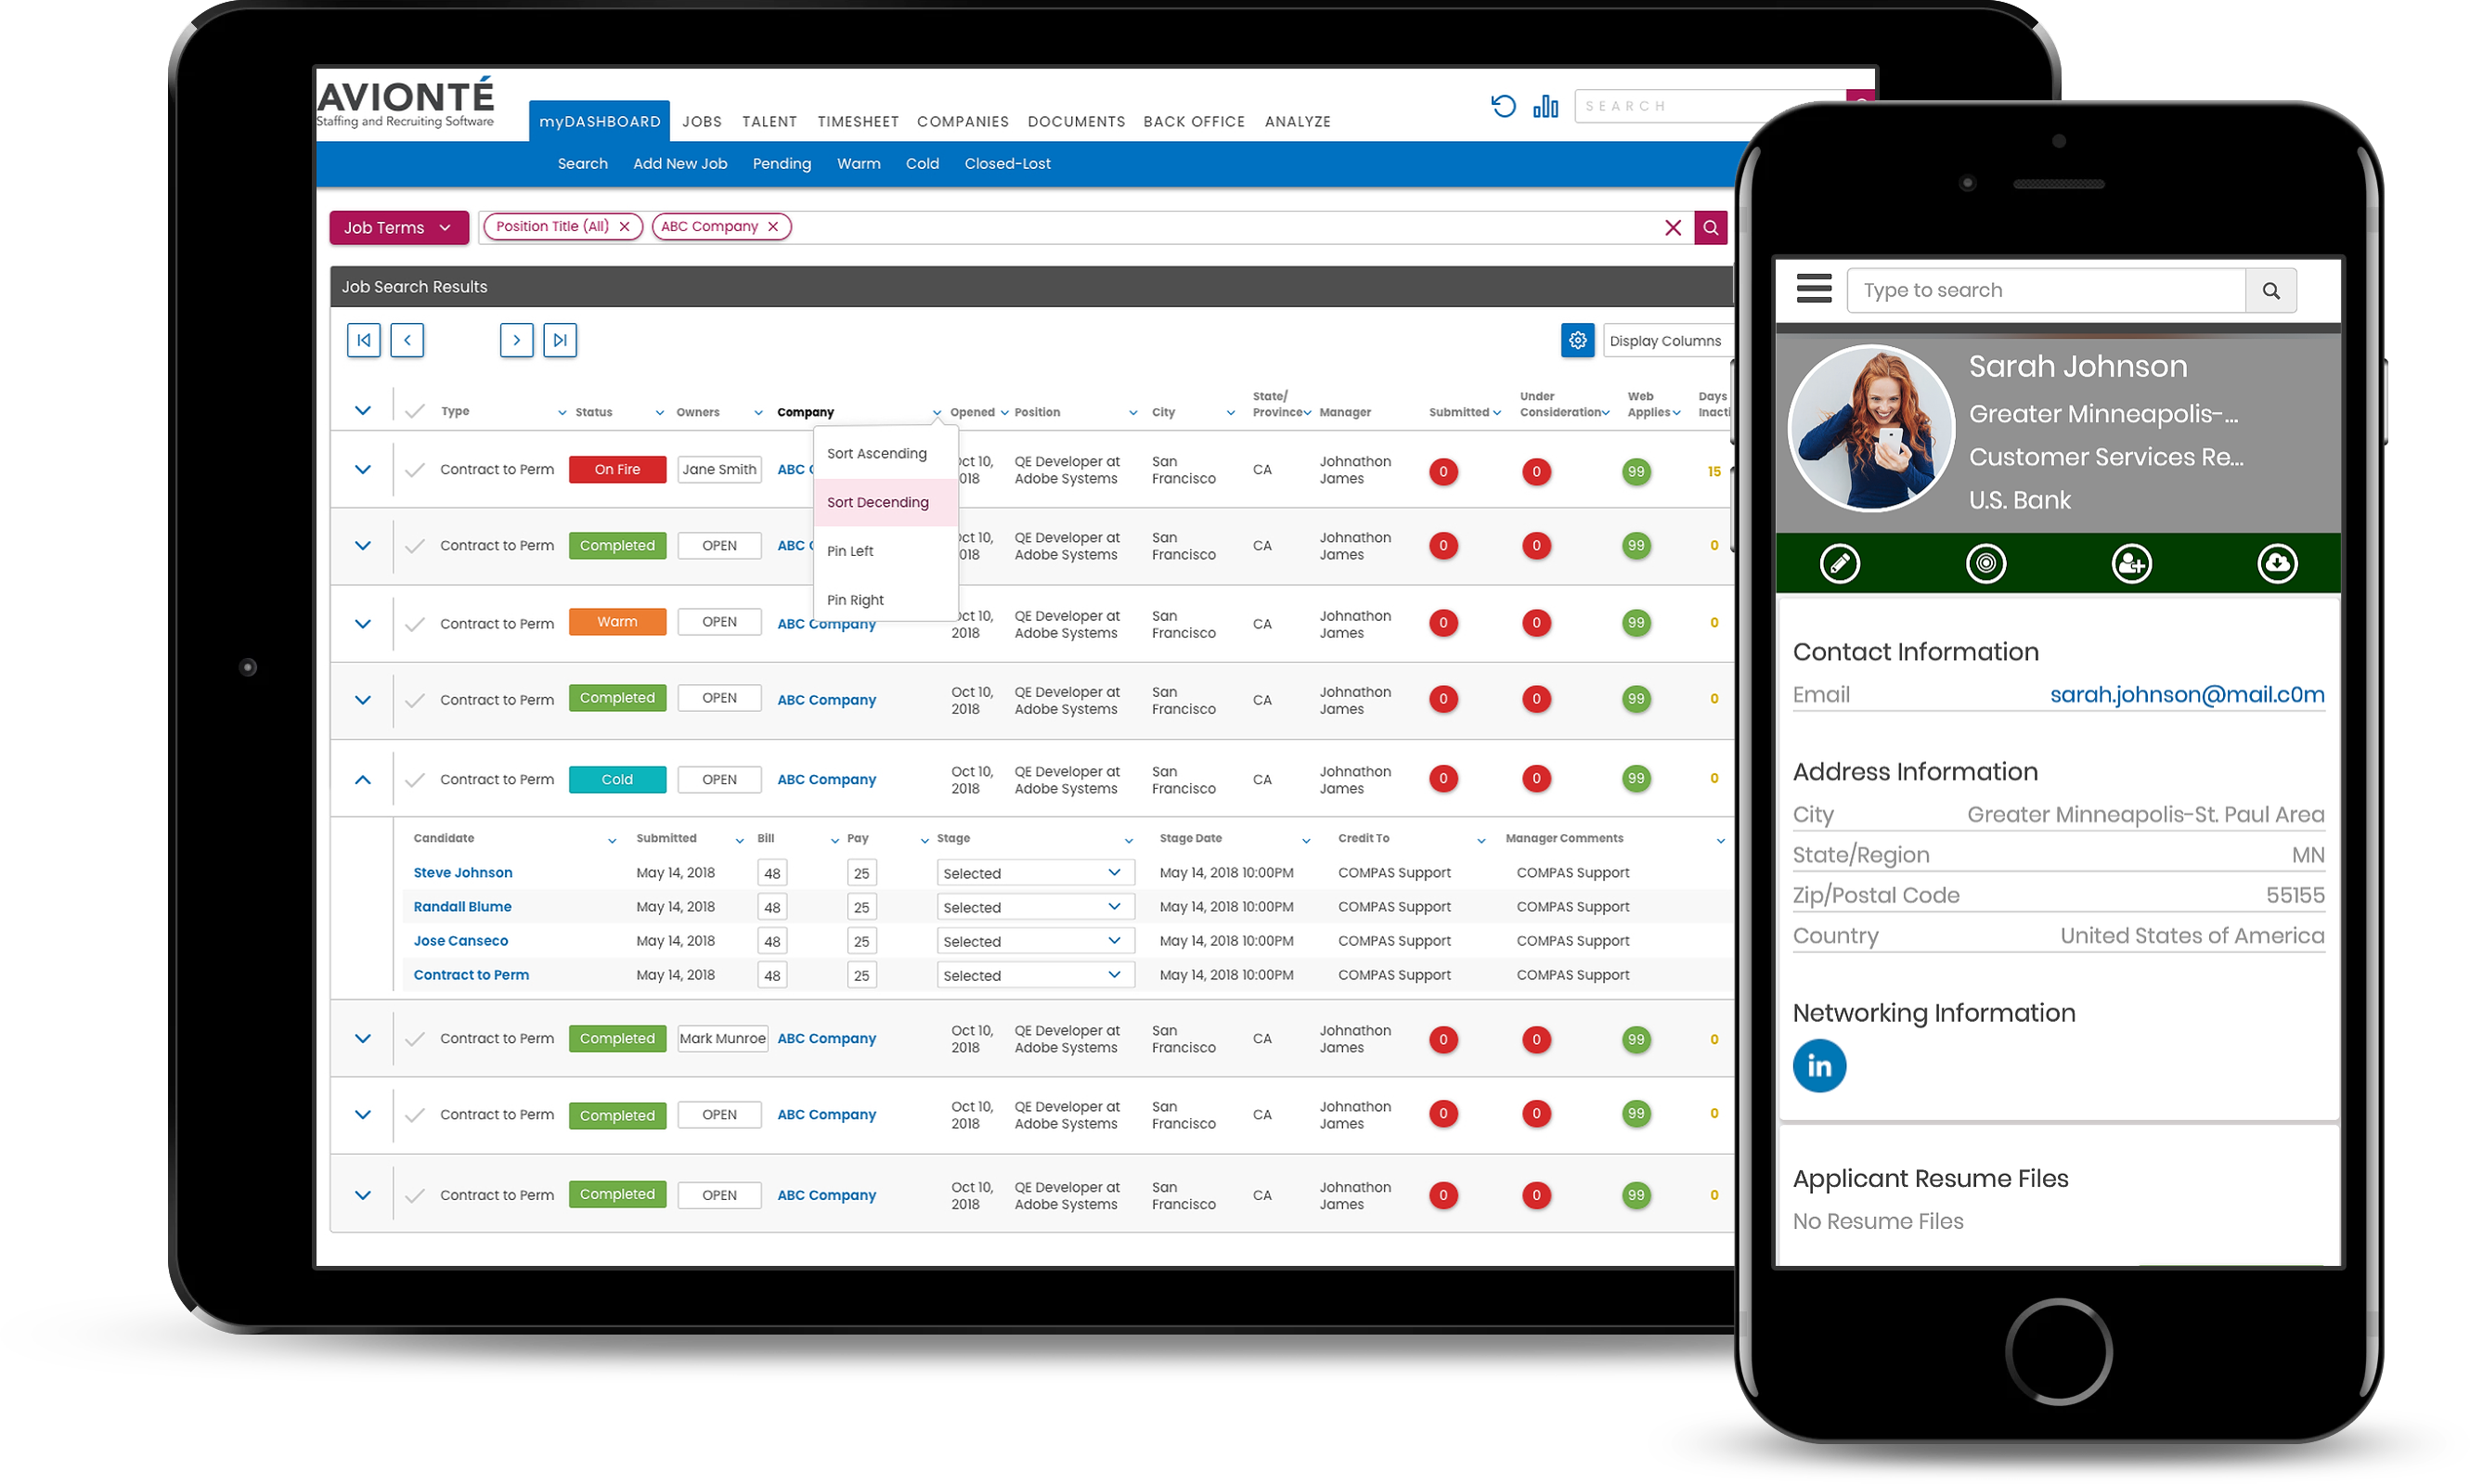 Avionté Staffing and Recruiting Software Demo - CONNECT: ATS & CRM